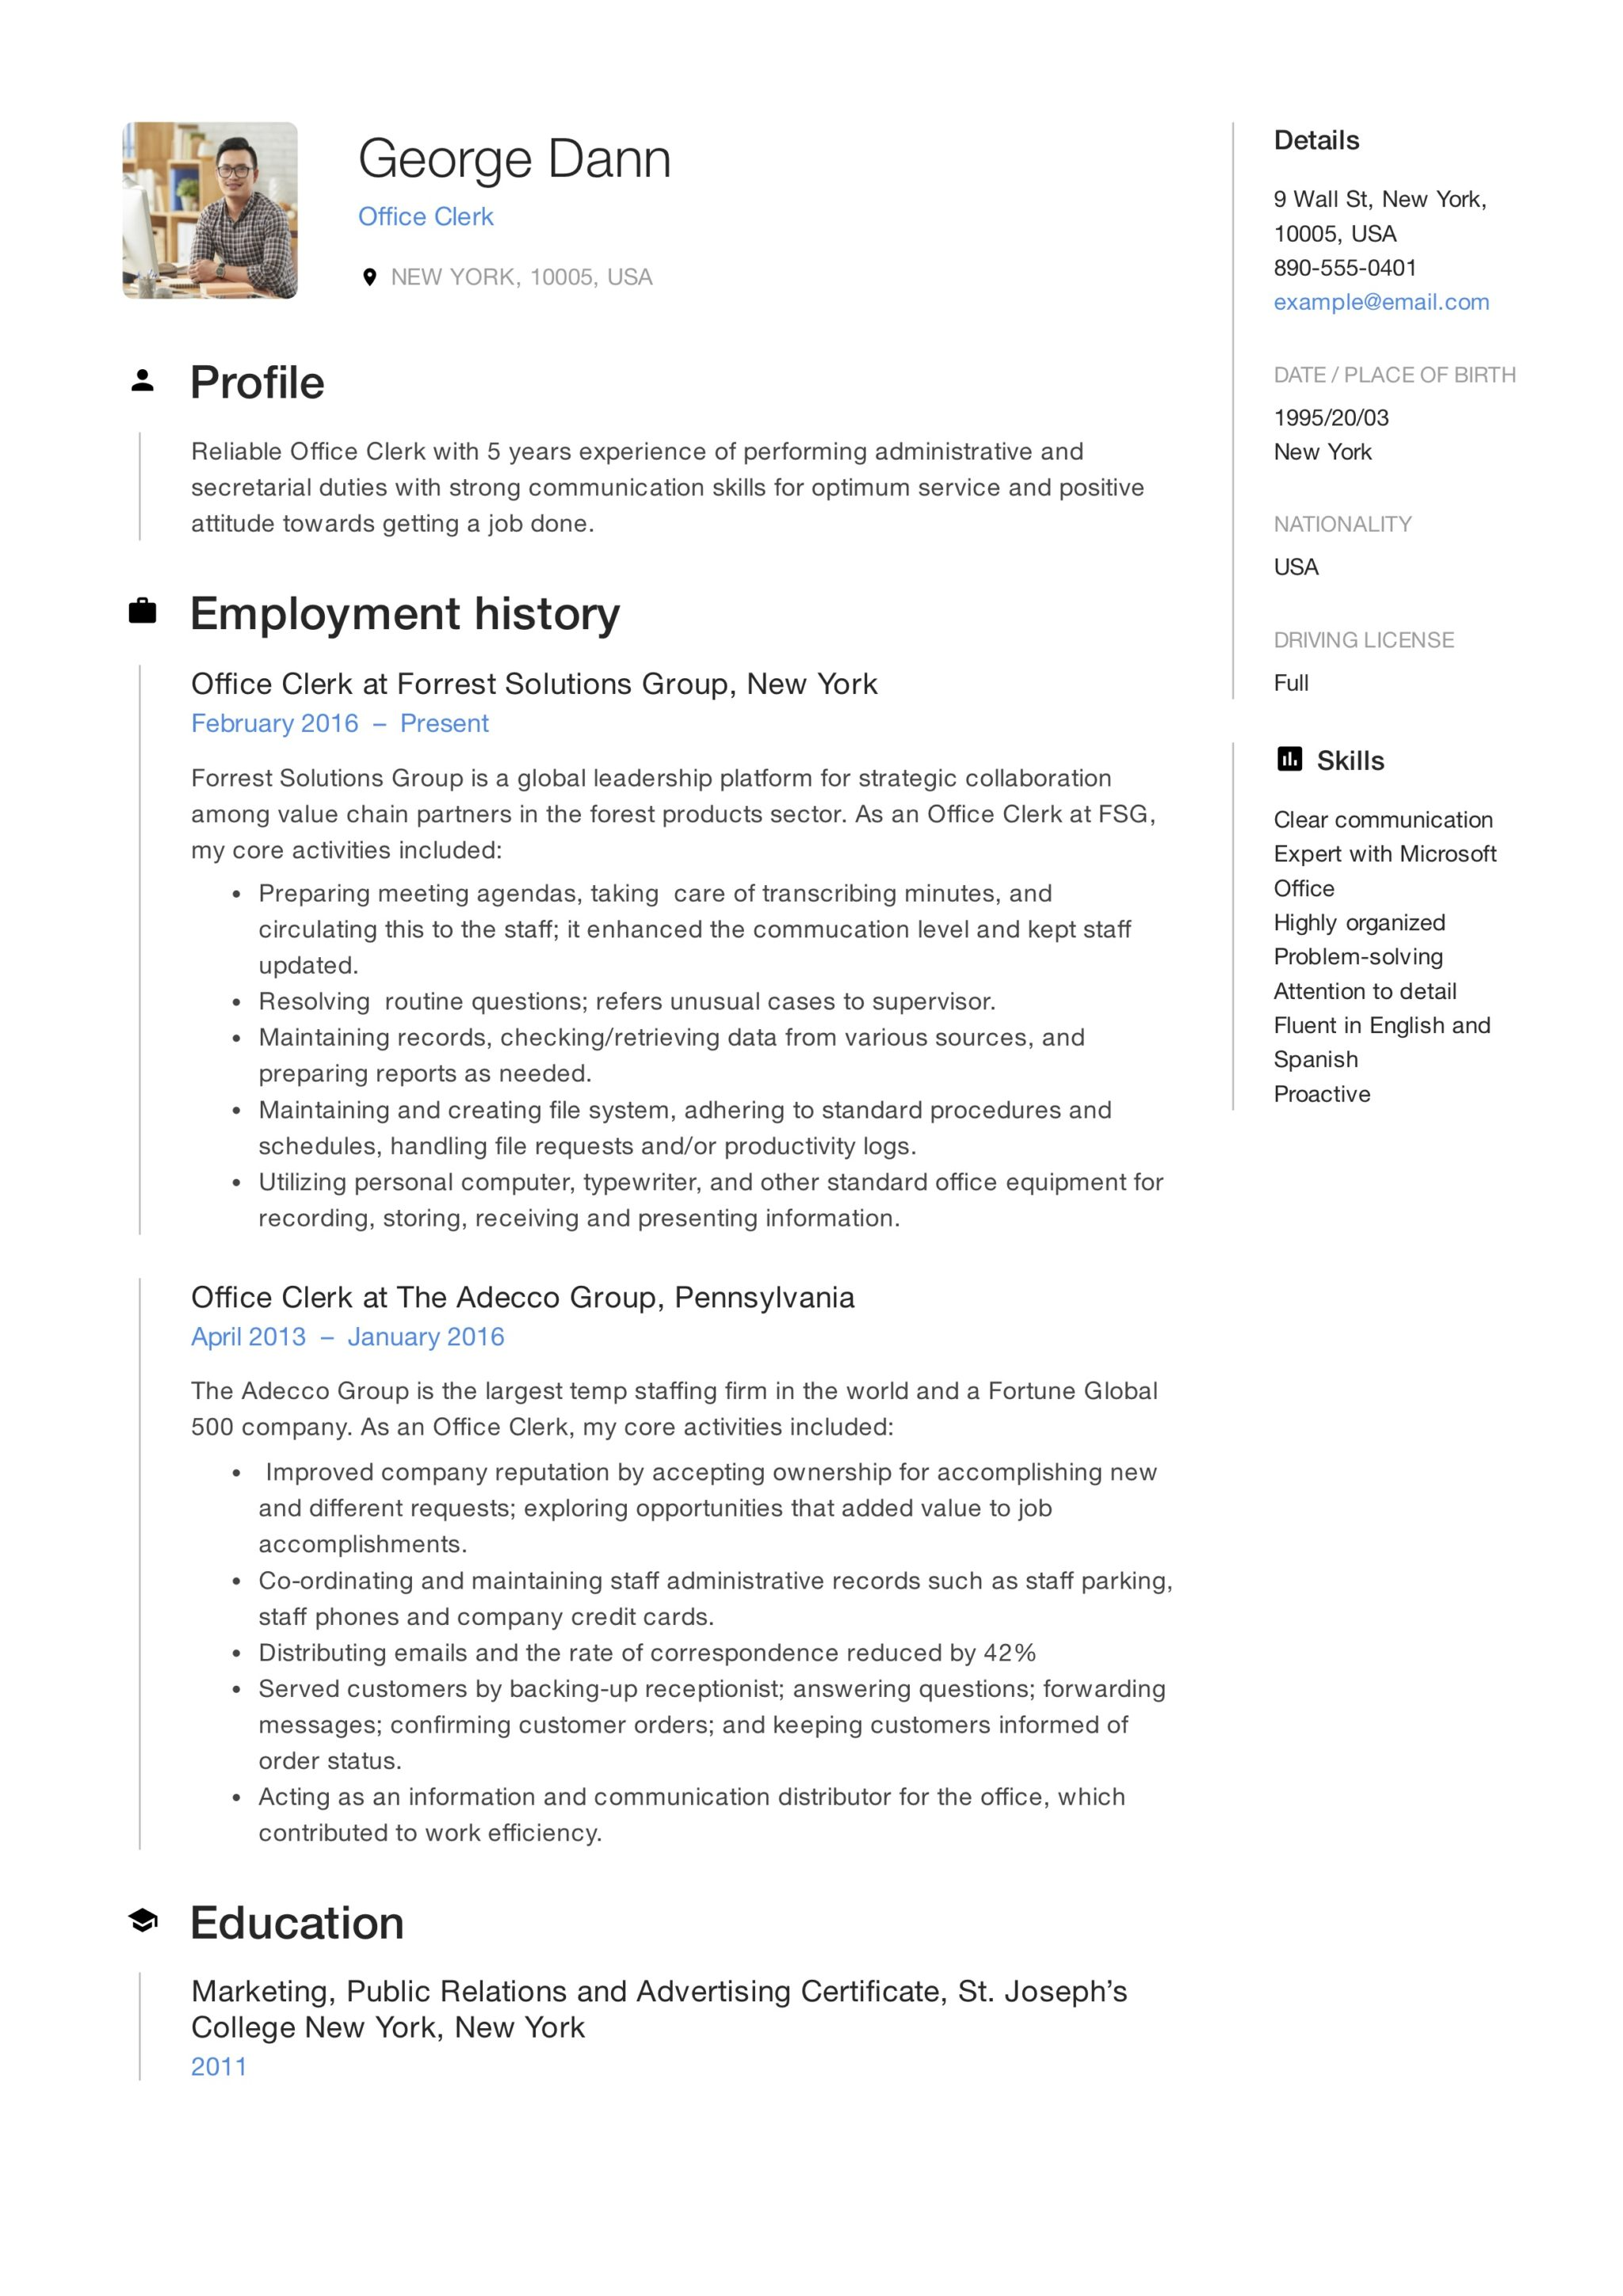 resume examples for office clerk